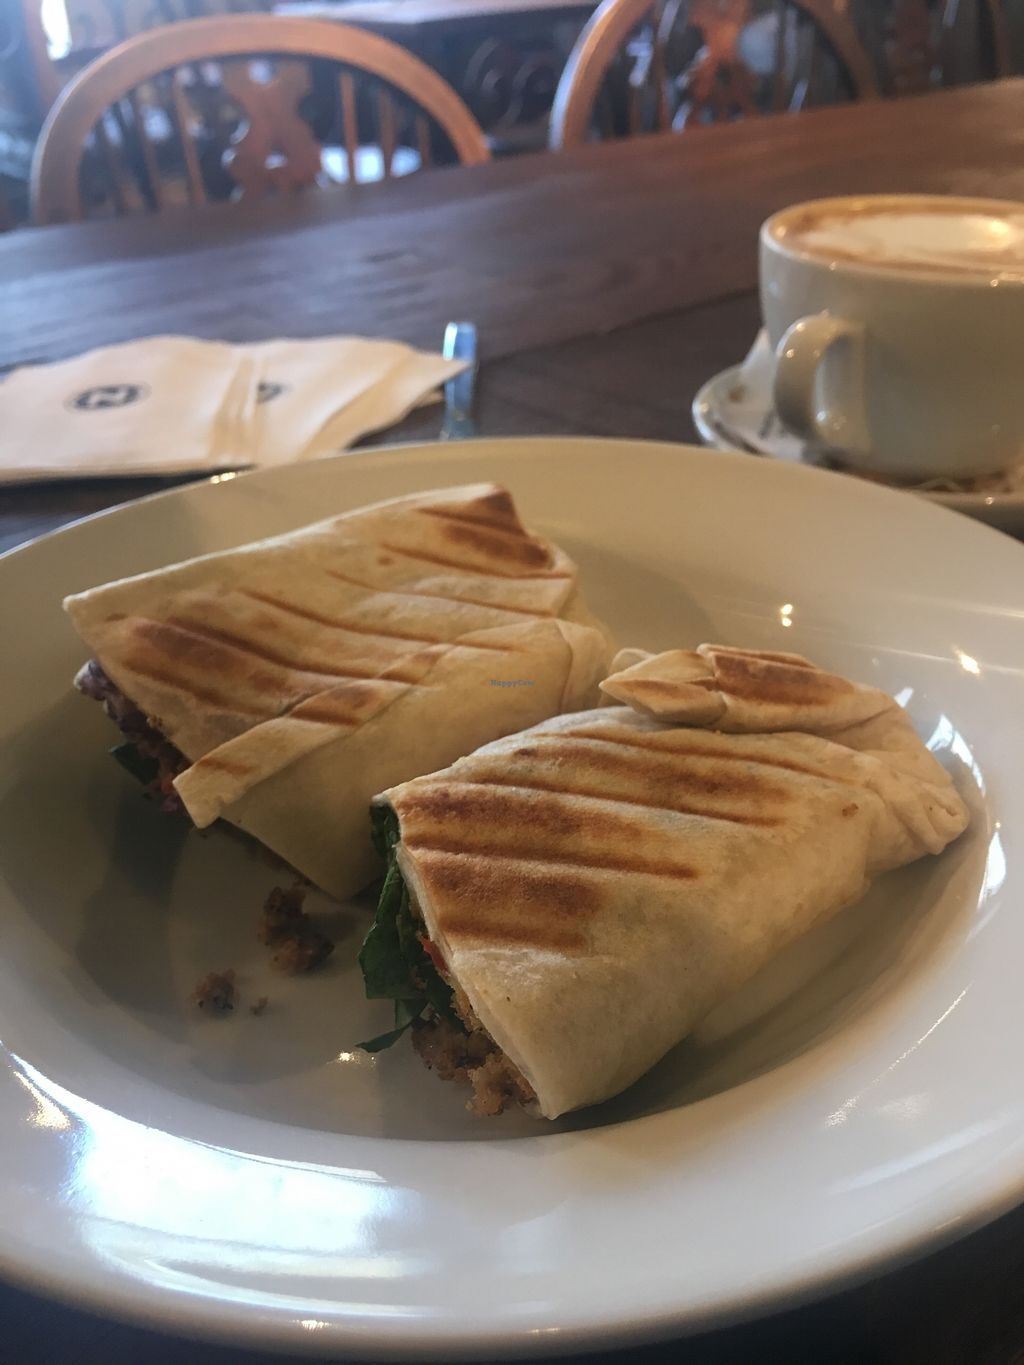 "Photo of Caffe Nero  by <a href=""/members/profile/AvrilTkd"">AvrilTkd</a> <br/>Falafel wrap and vegan soy mocha <br/> November 10, 2017  - <a href='/contact/abuse/image/104775/324039'>Report</a>"